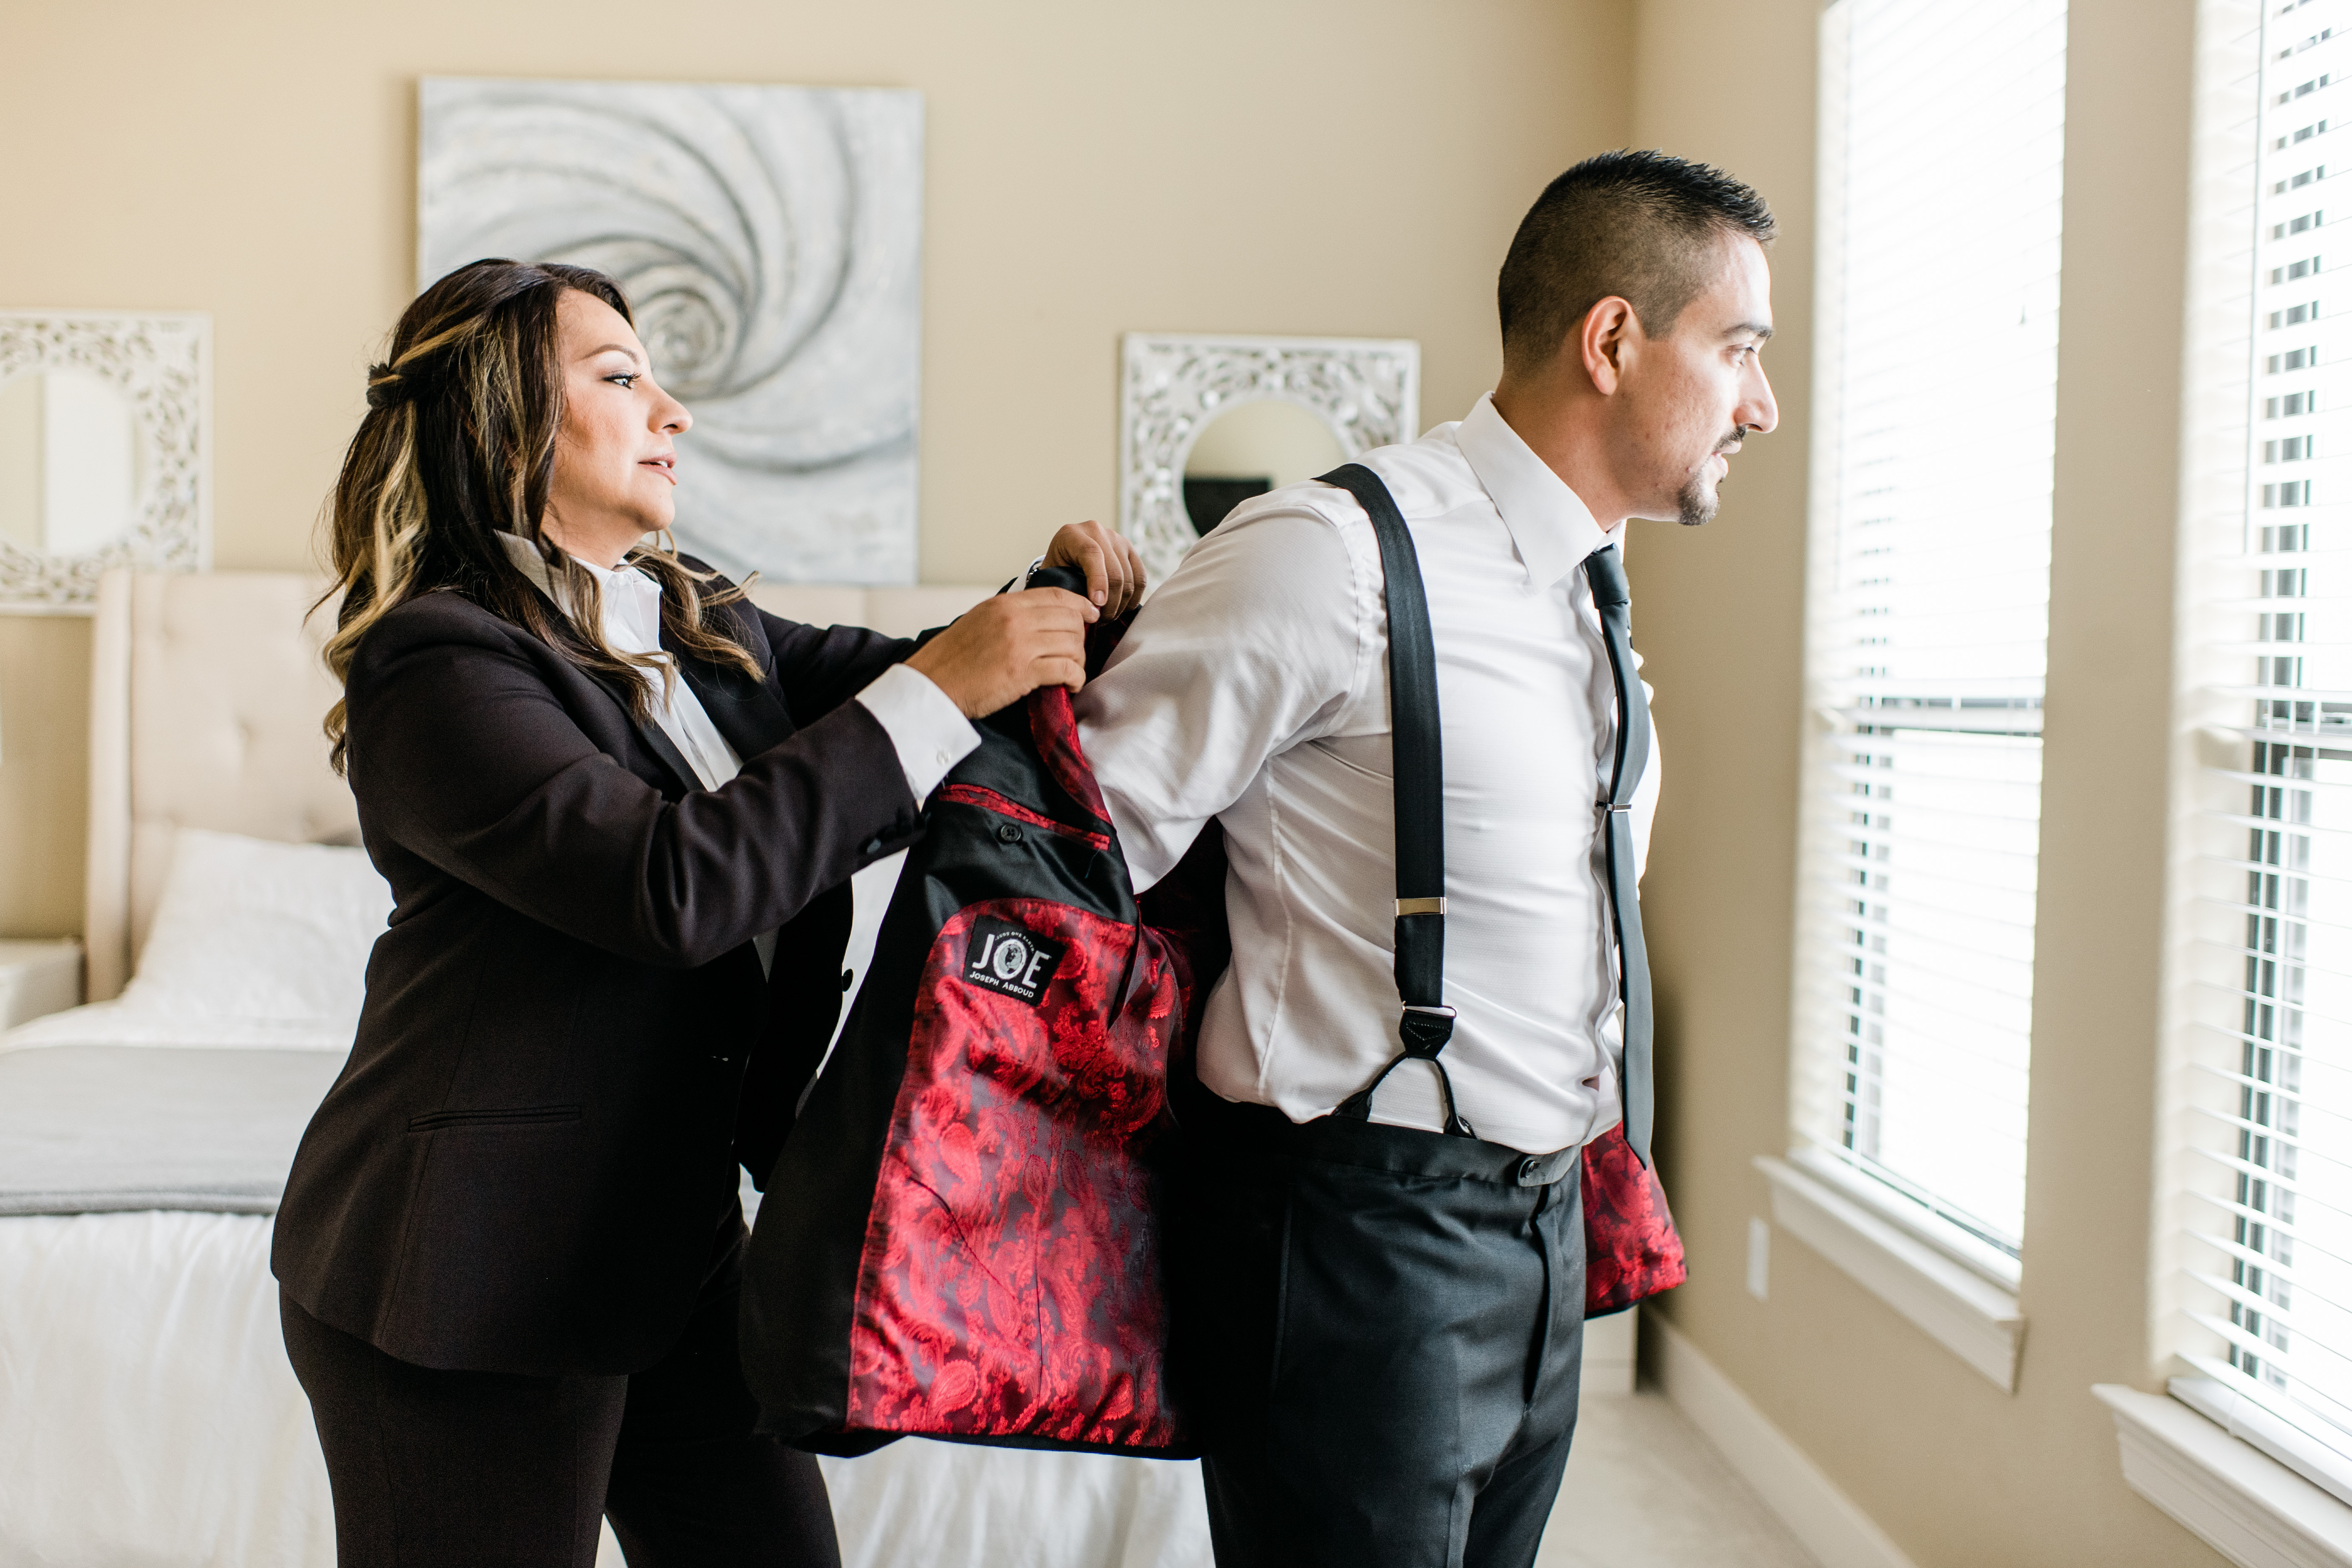 The groom's sister helps him put on his suit jacket.